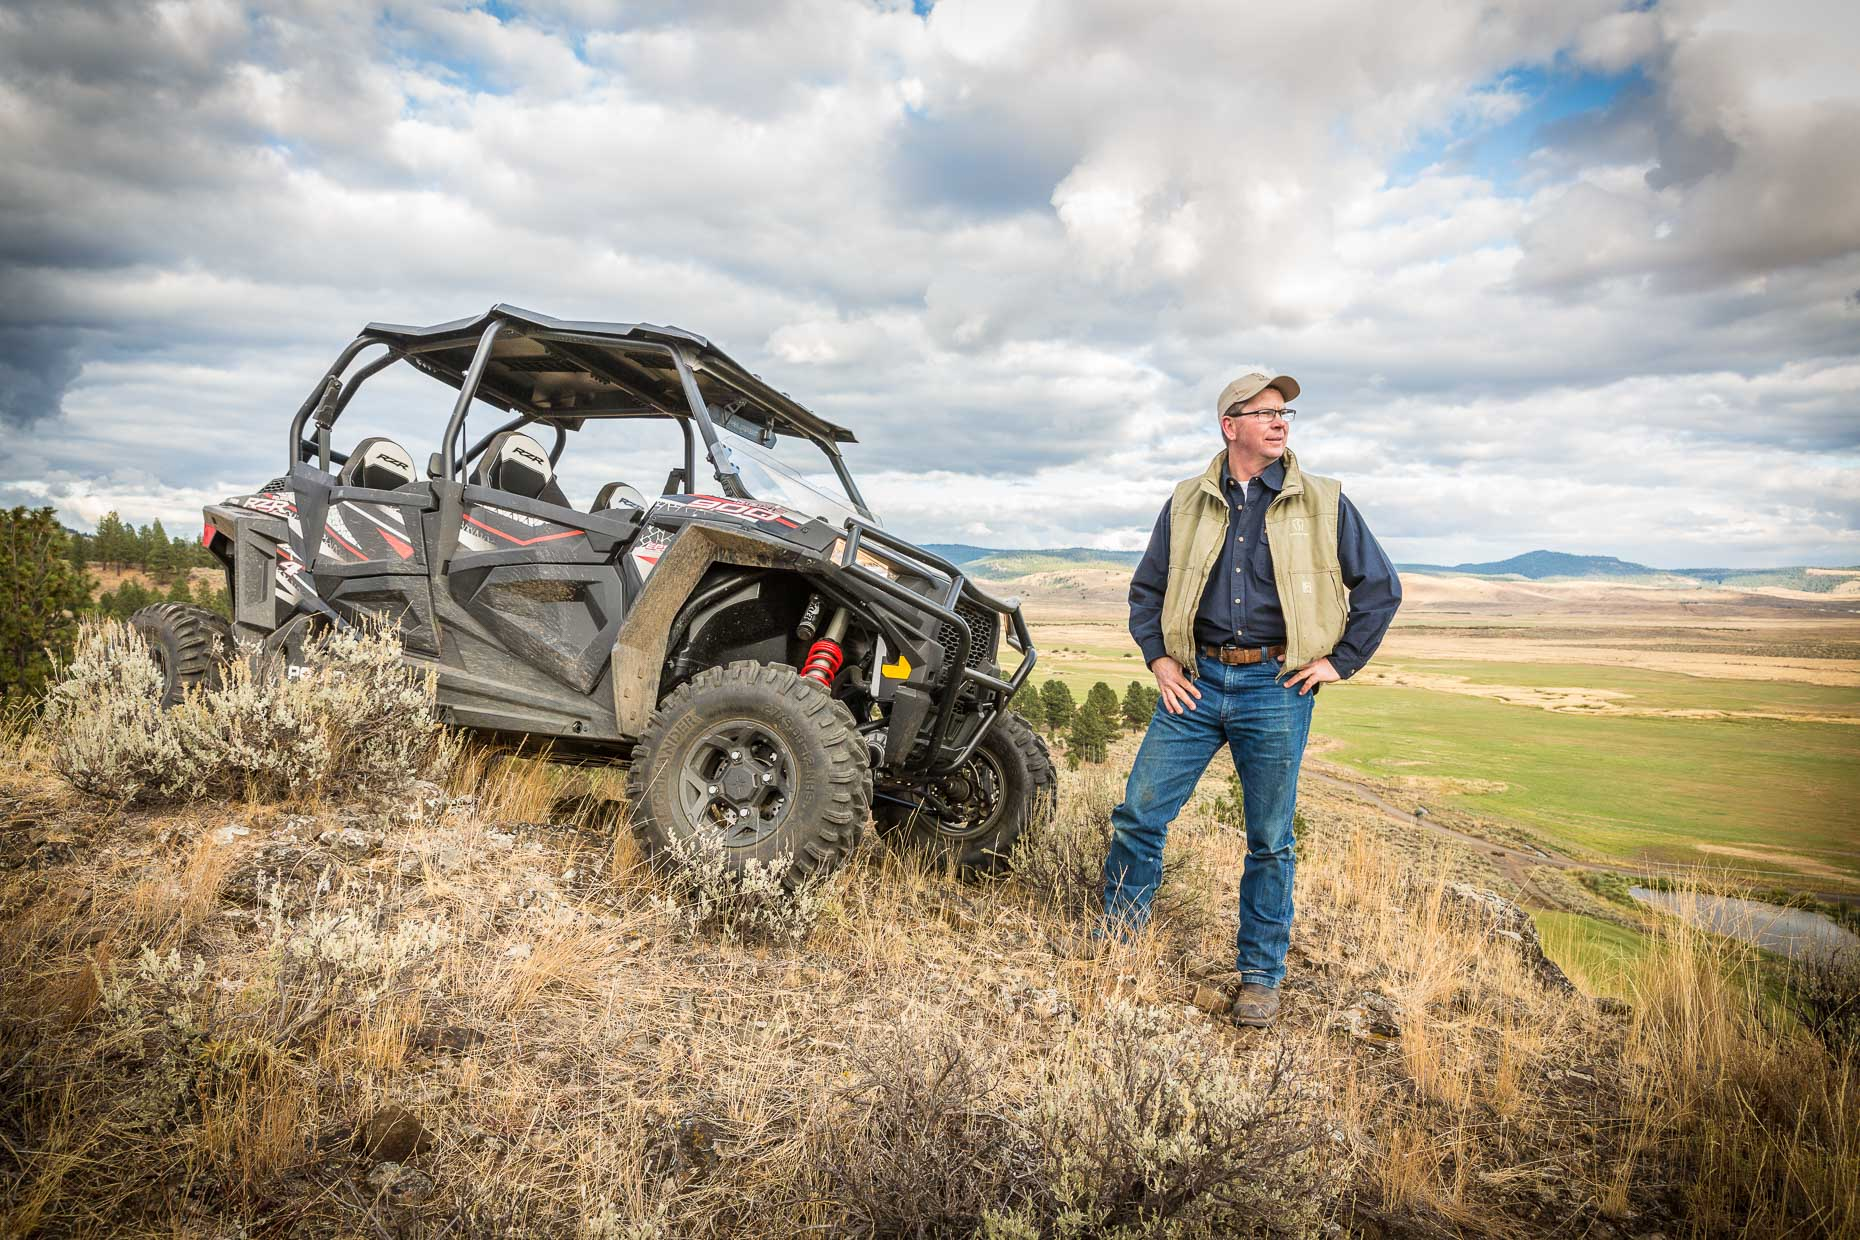 Environmental portrait of man standing next to ATV on top of hill in Seneca, Oregon.